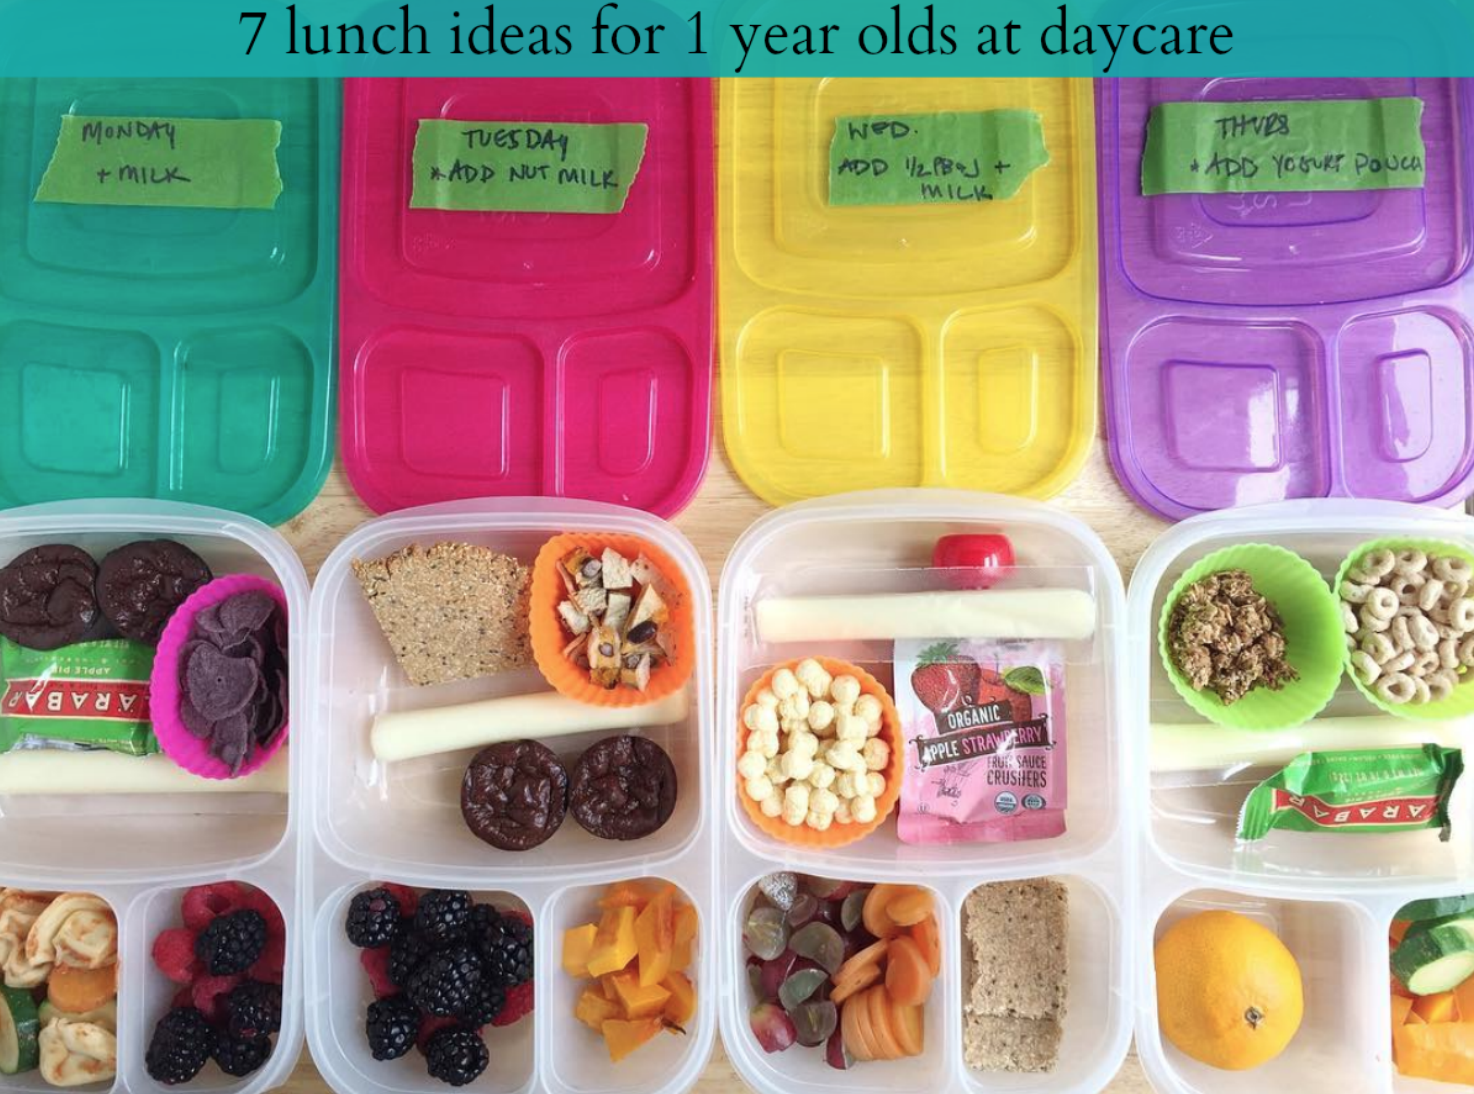 7 lunch ideas for 1 year olds at daycare